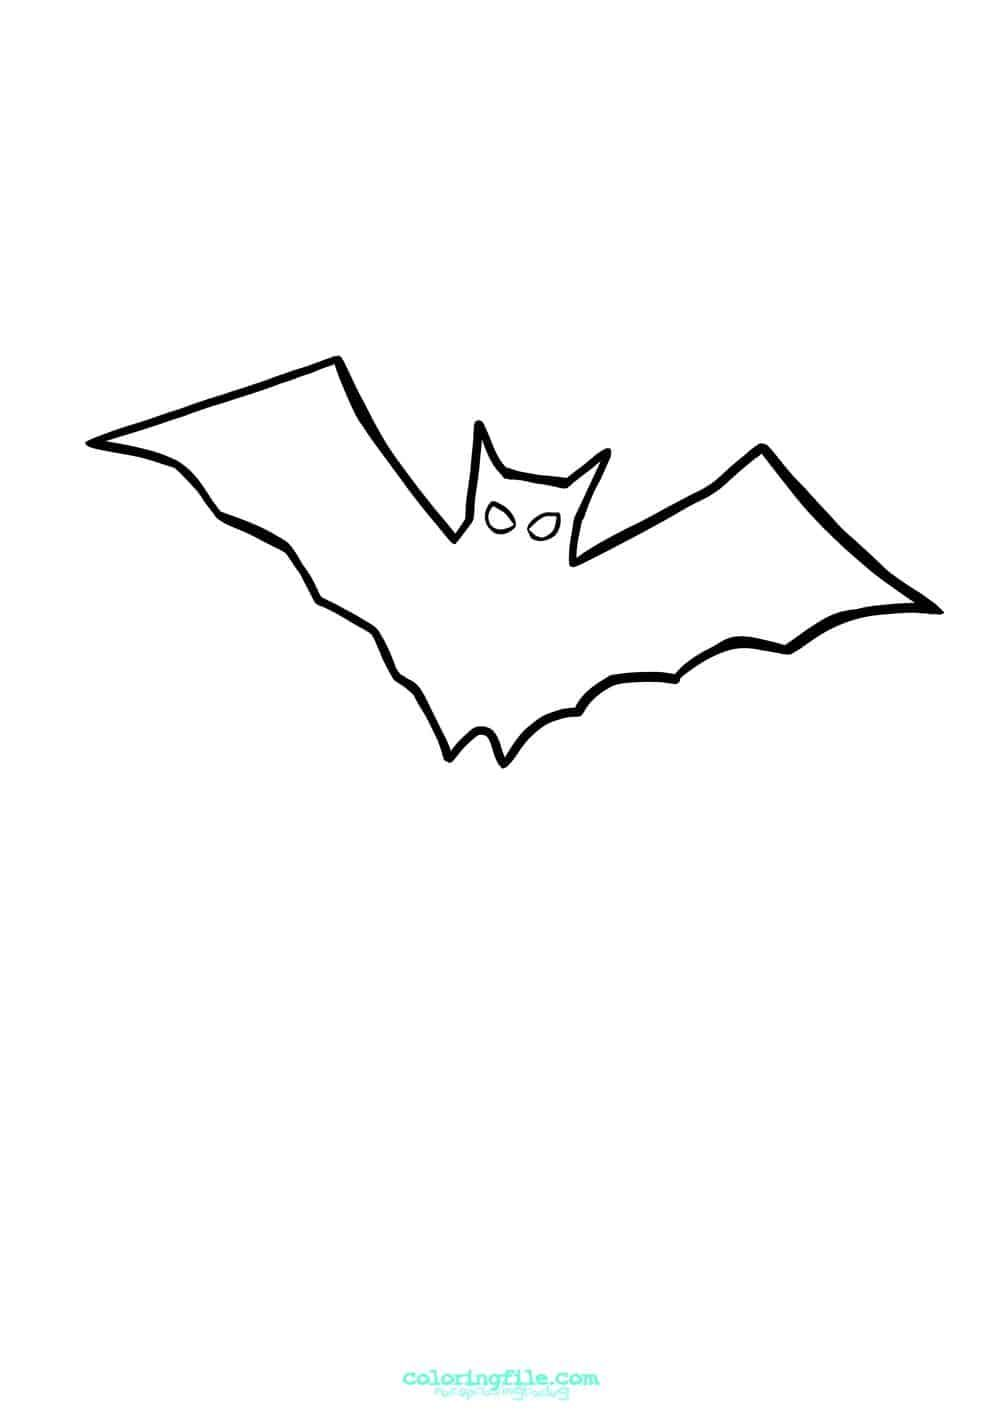 Easy To Draw Halloween Bat Coloring Pages From 100 Halloween